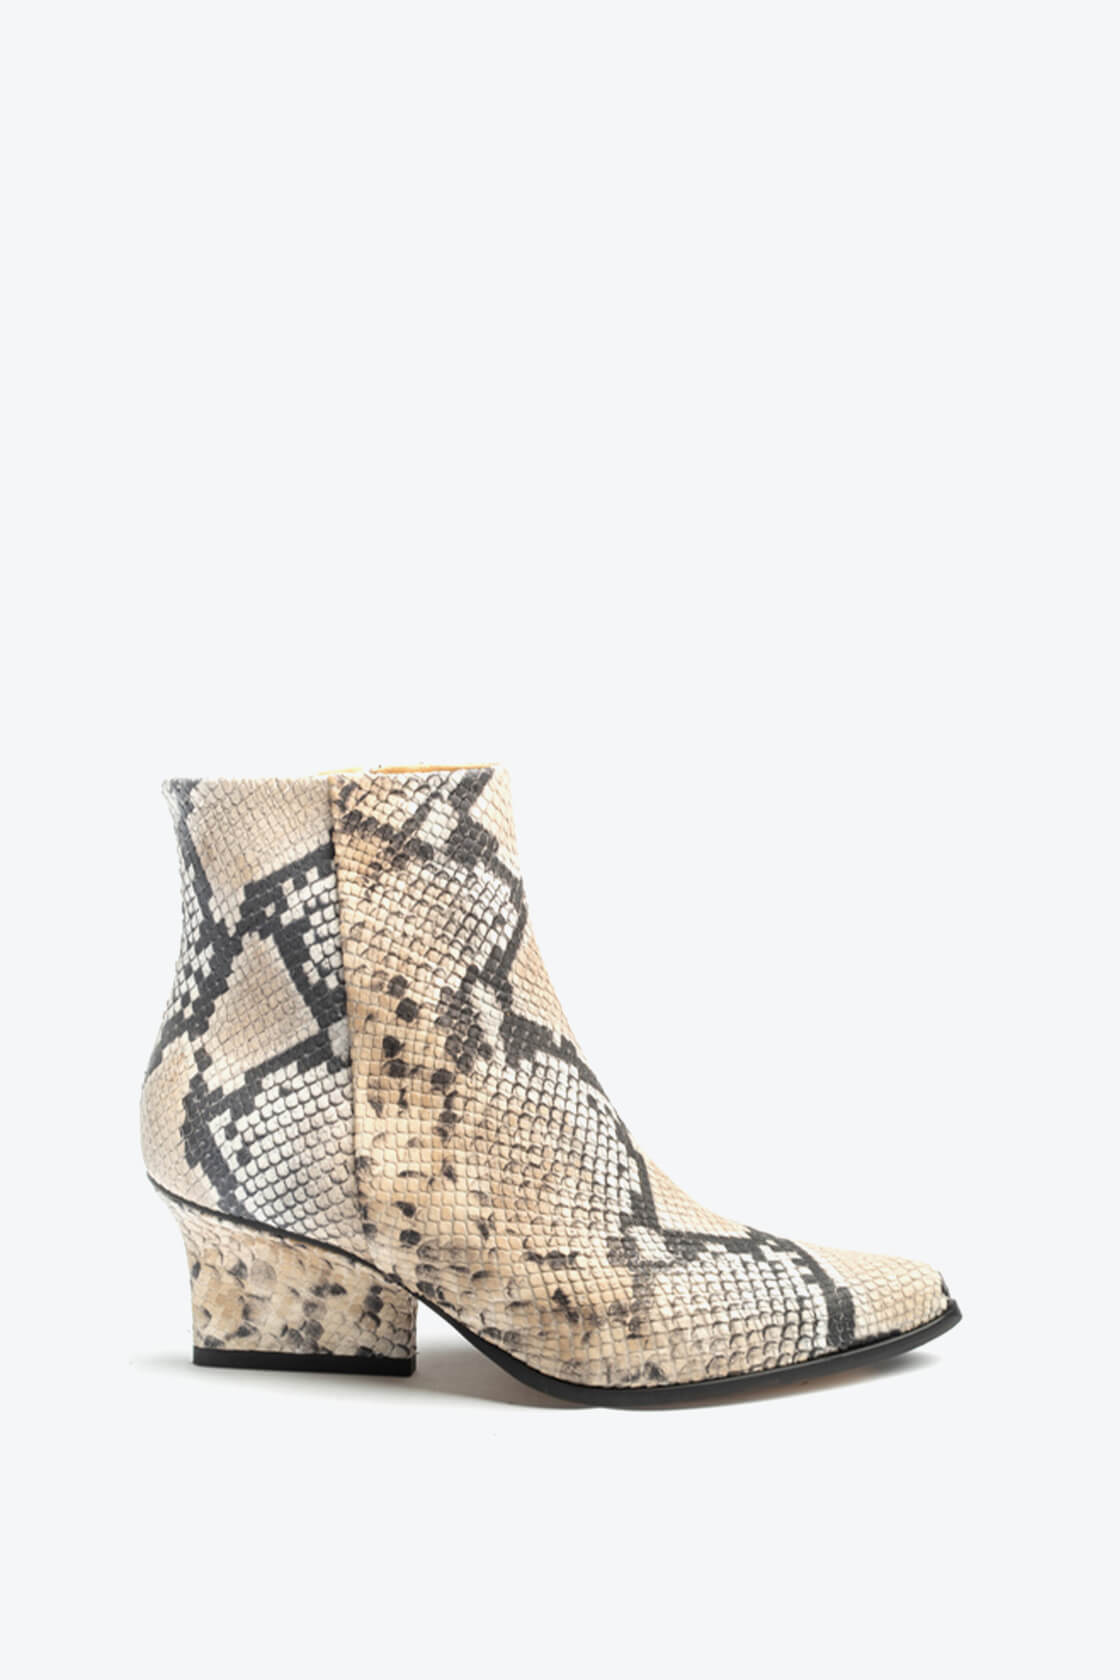 EJK0000001 Ryan ankle boots Beige python print 1